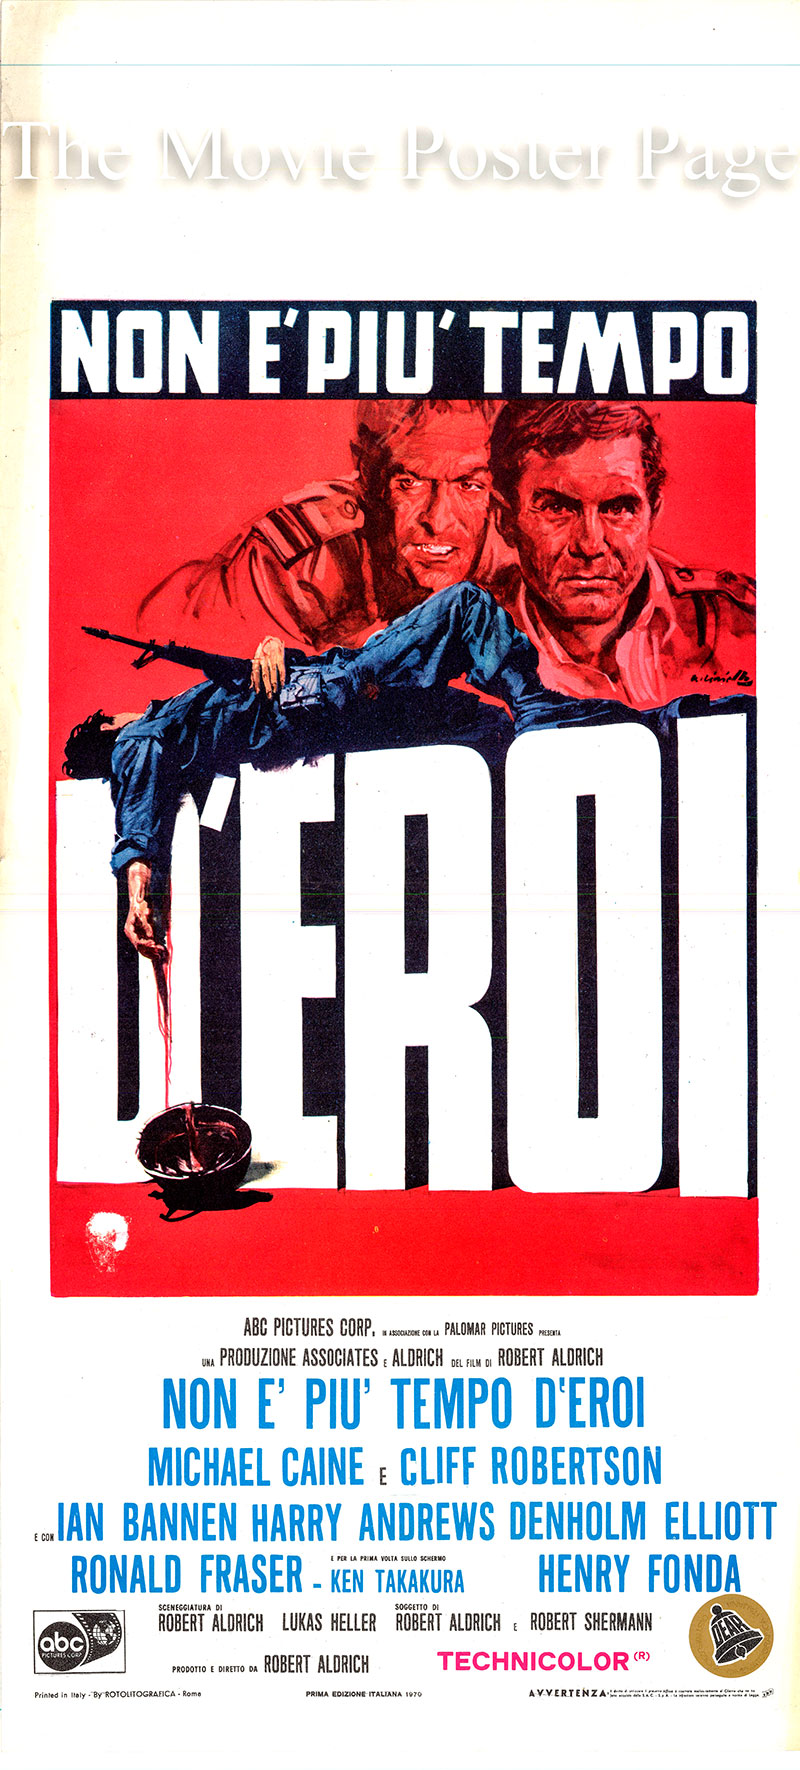 Pictured is an Italian locandina poster for the 1970 Robert Aldrich film Too Late the Hero starring Michael Caine as Private Tosh Hearne.